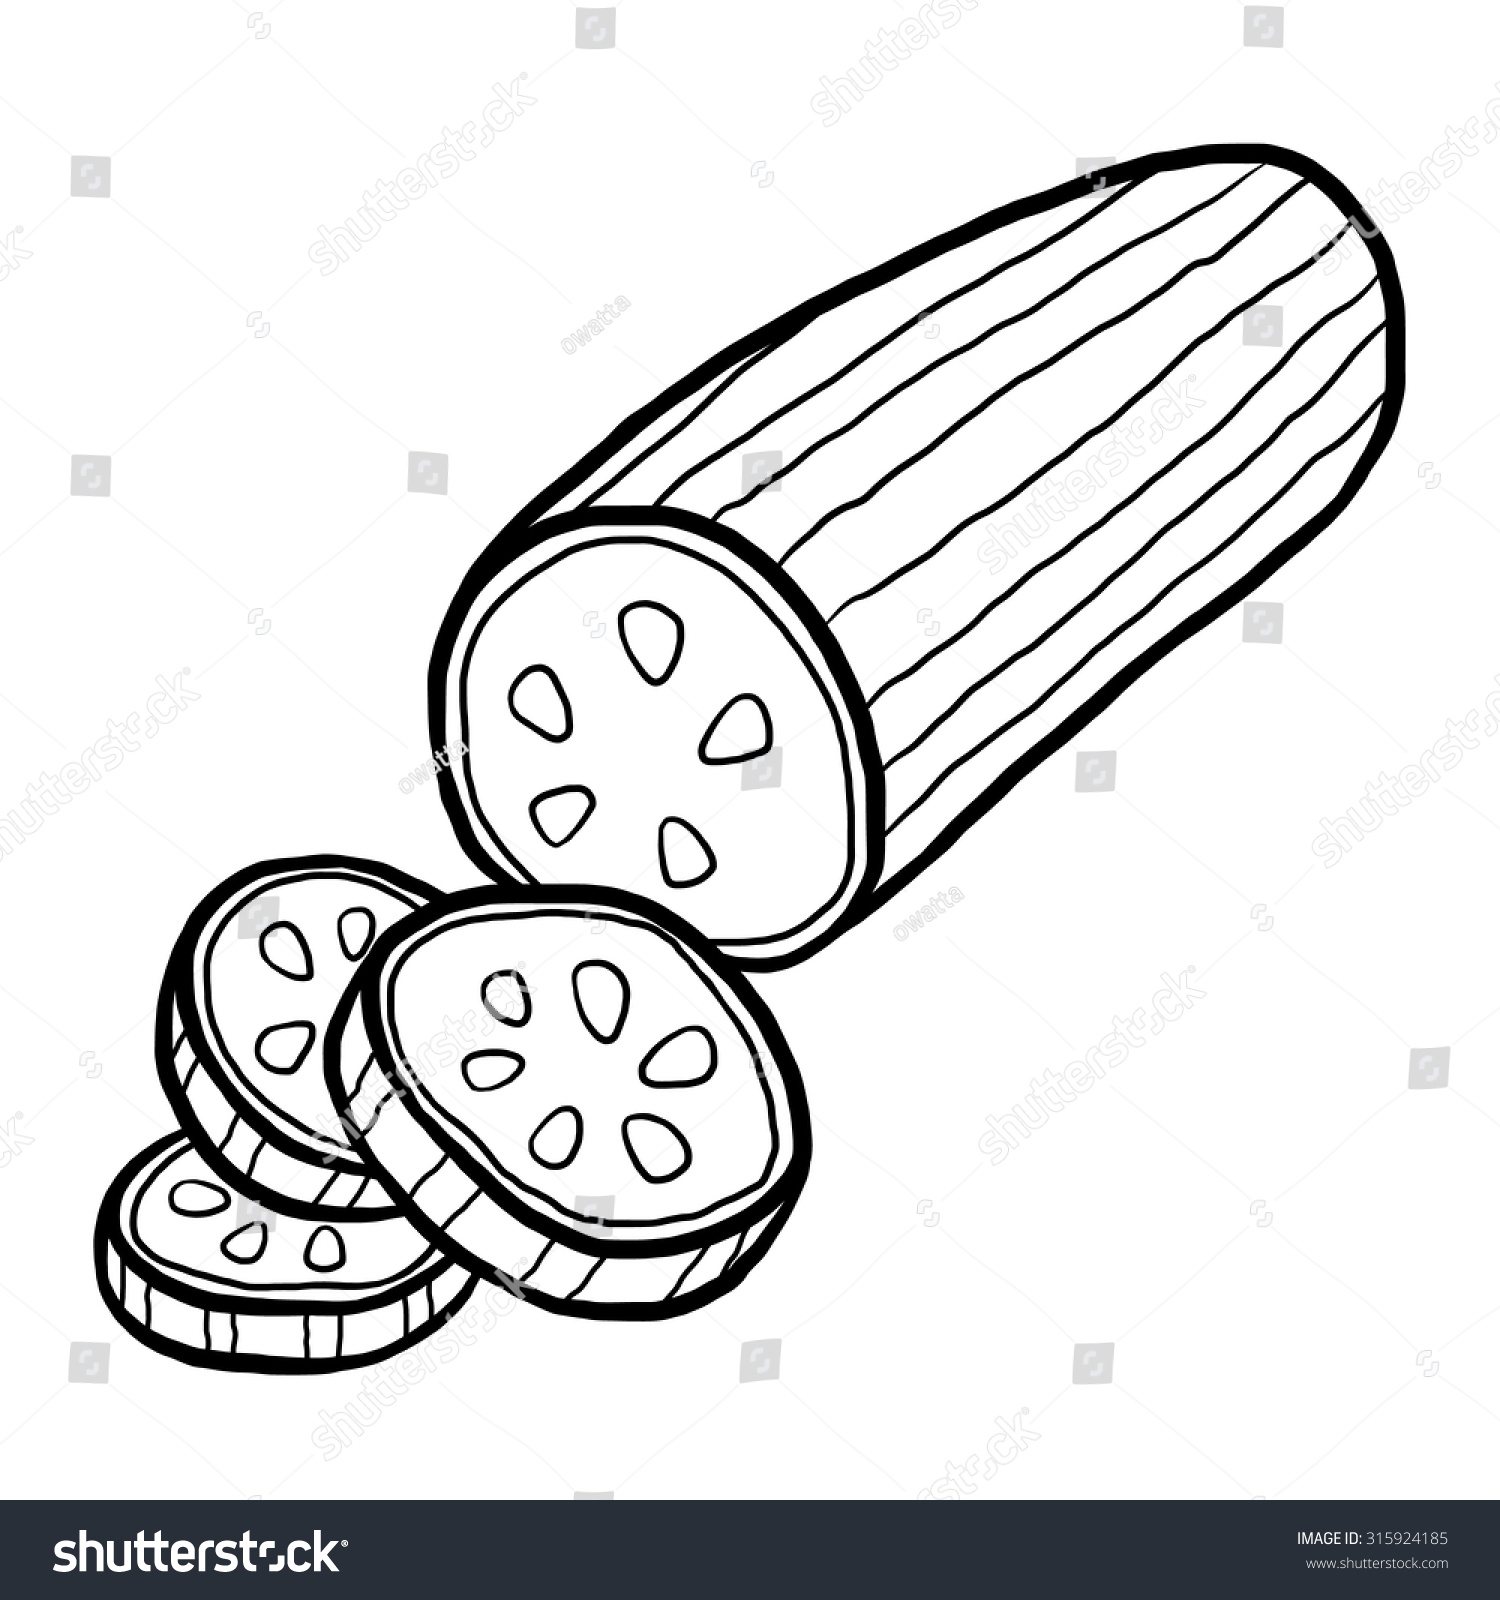 Cucumber Cartoon Vector Illustration Black White Stock Vector HD ... for Drawing Cucumber  56bof